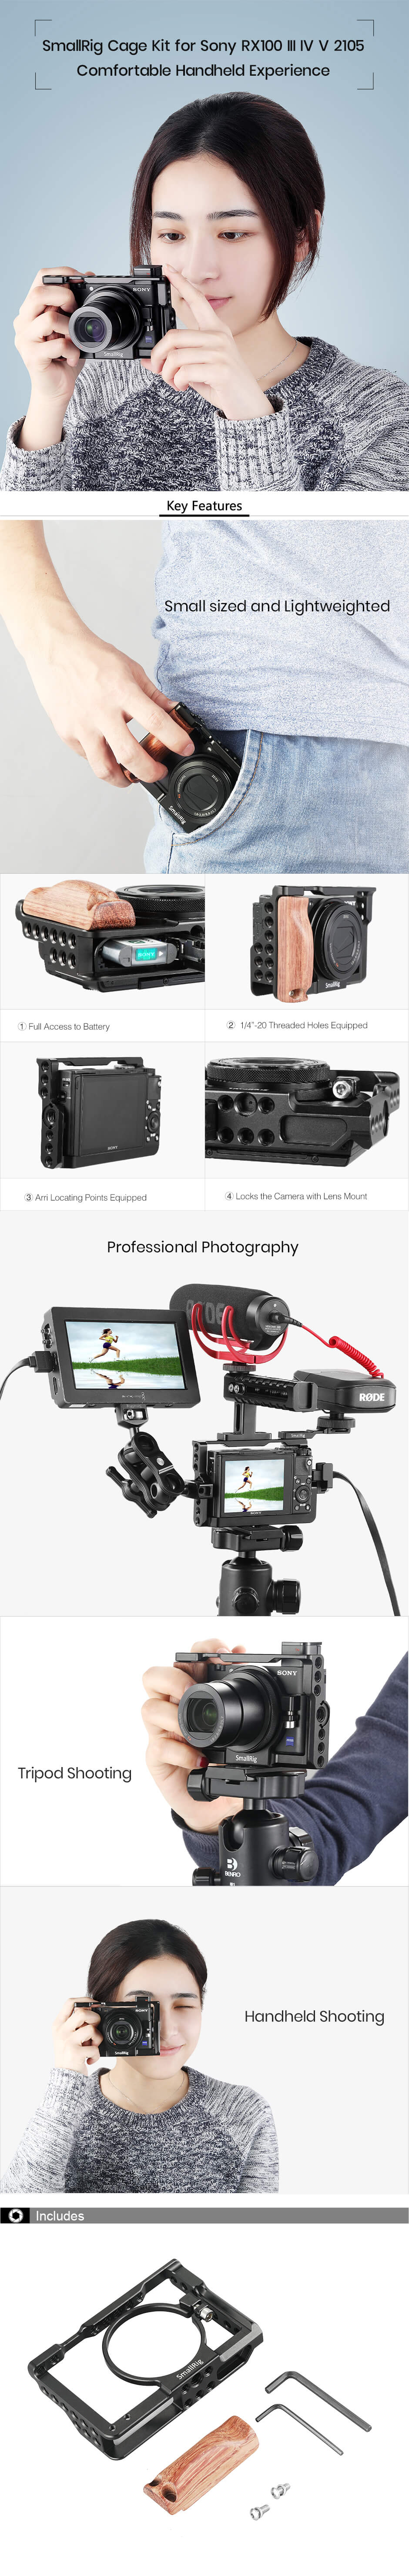 smallrig-cage-kit-2105-is-designed-for-sony-rx100-m3-m4-m5-2.jpg